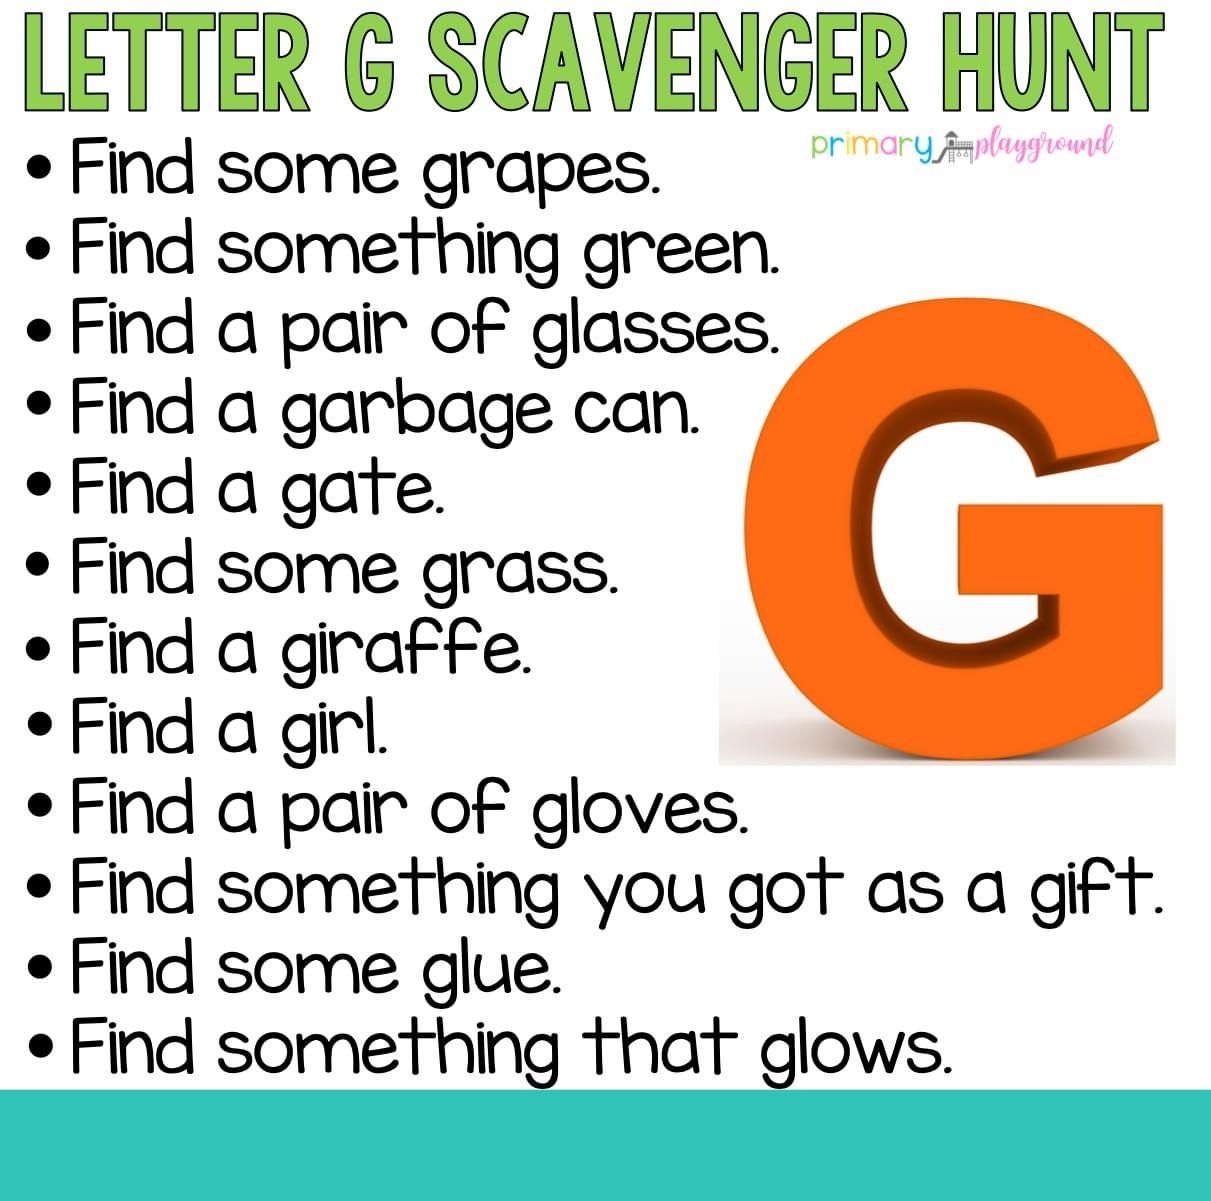 Pin By Phoebee Domercant On Scavenger Hunts In